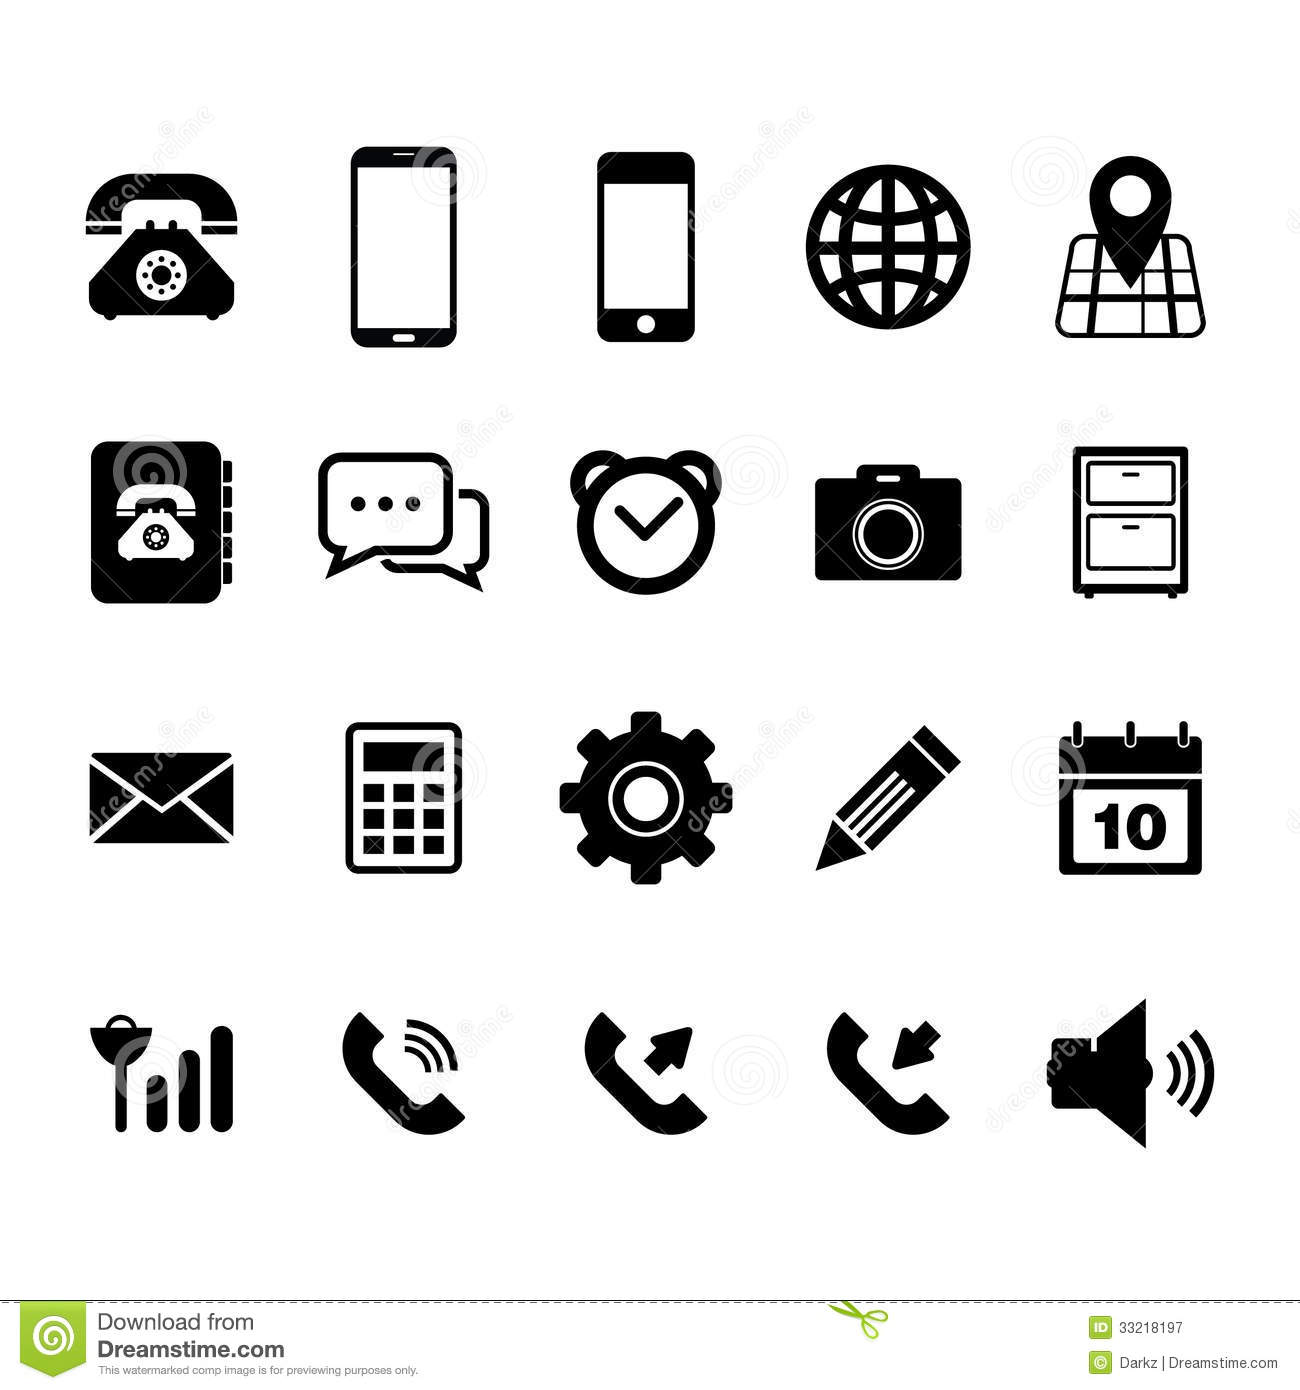 Czeshop images cell phone icon for business card source thumbsdreamstime report cell phone icon for business card magicingreecefo Gallery